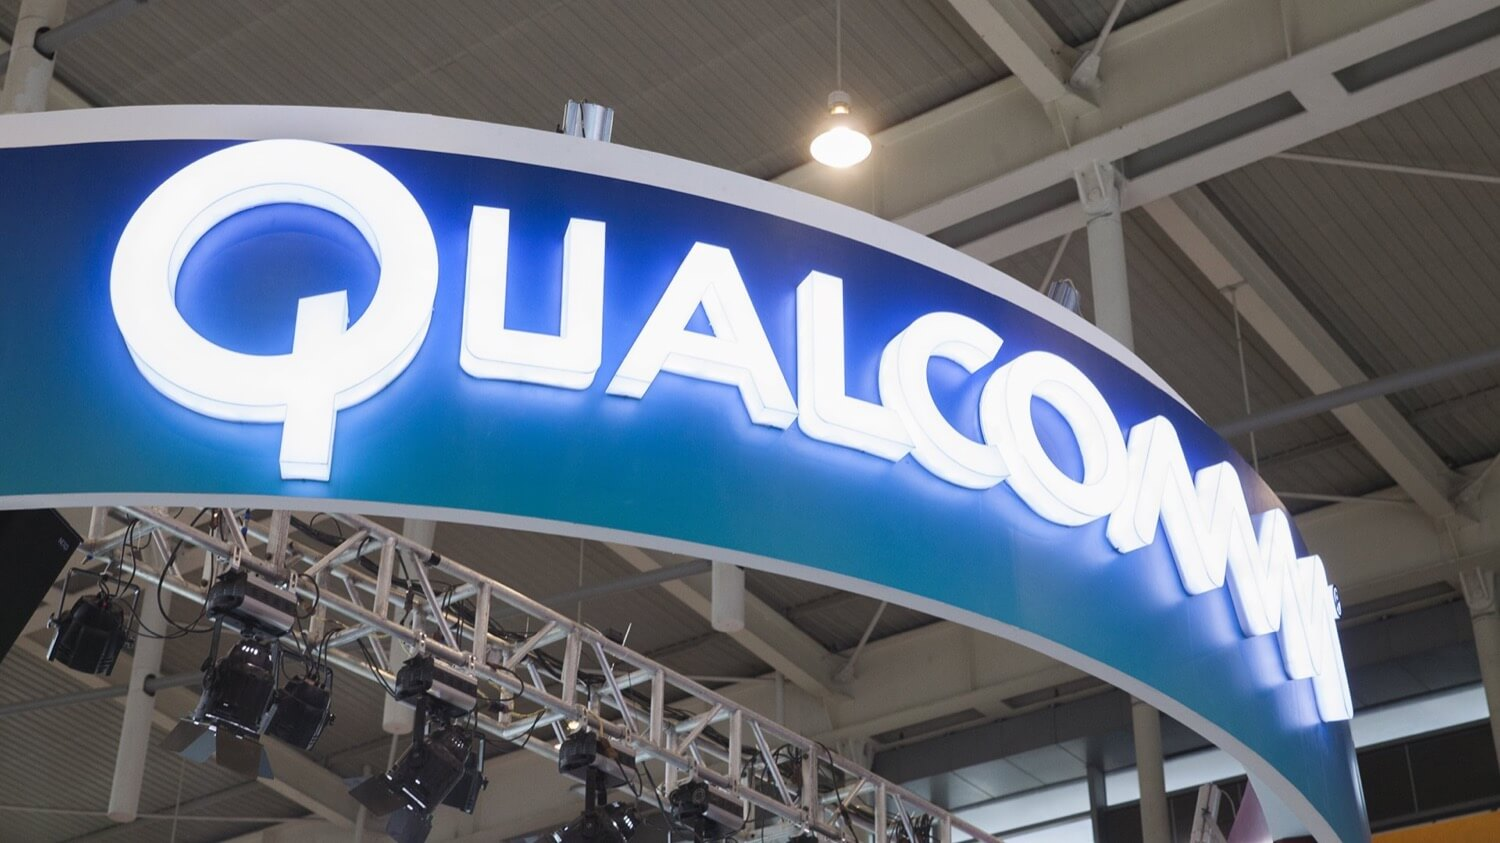 Qualcomm was accused of forcing Apple to use their chips